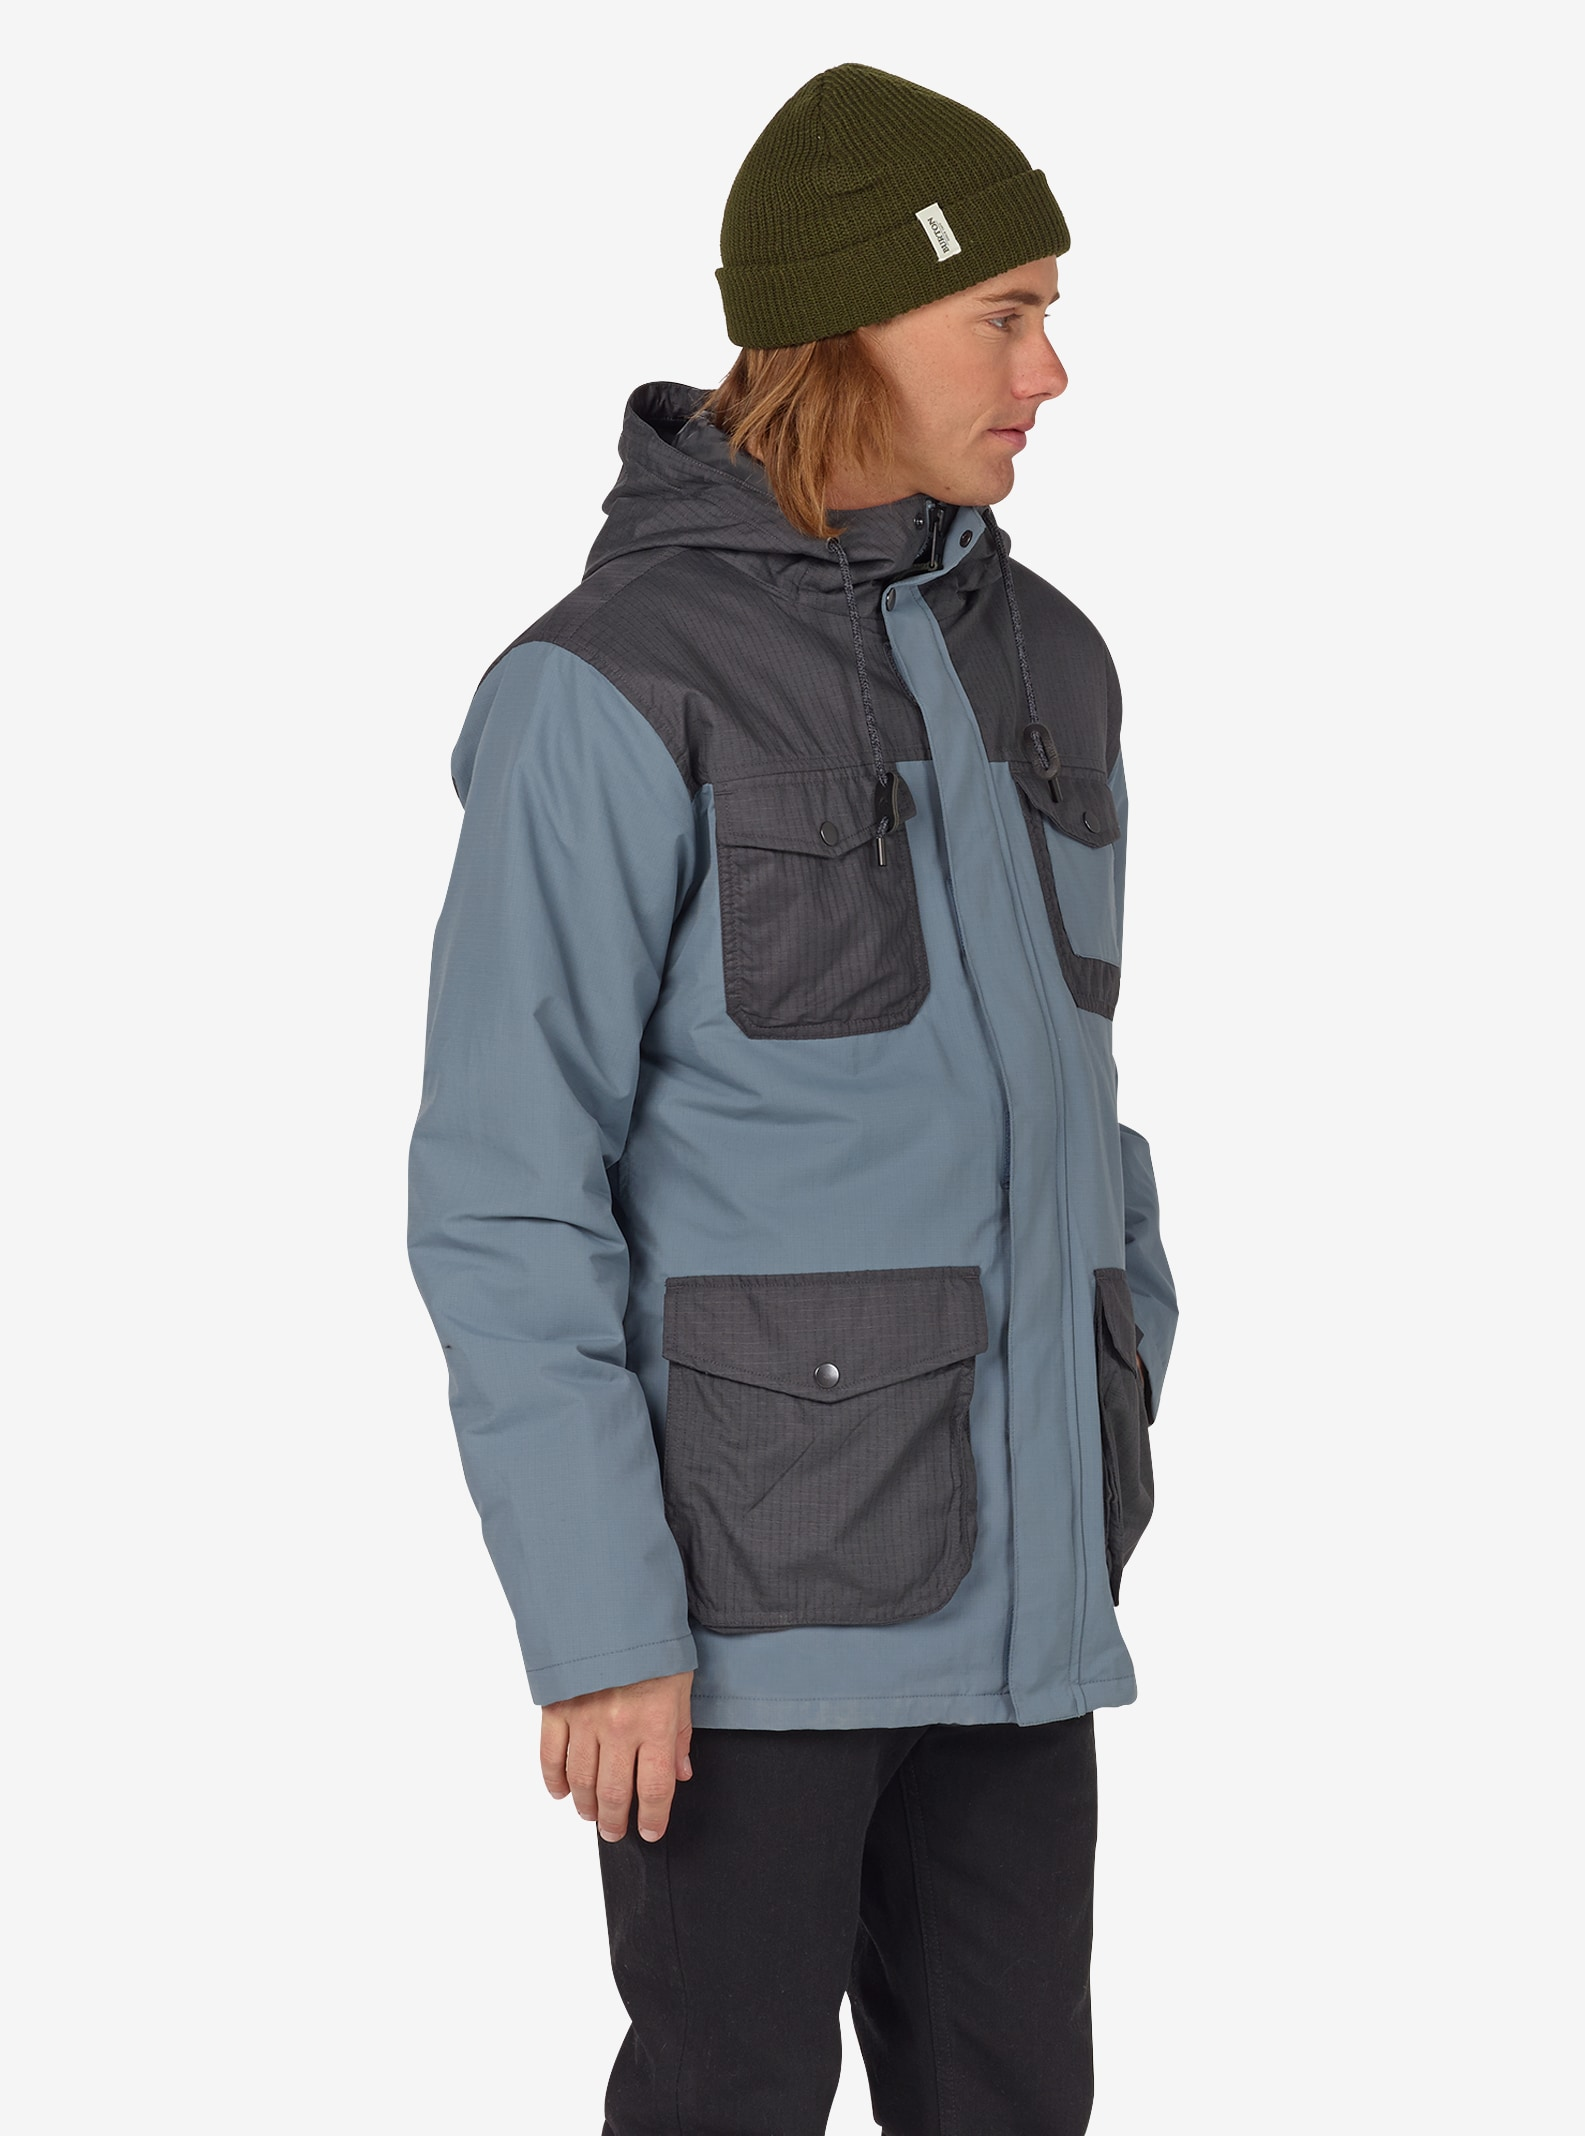 Men's Burton Match Jacket shown in LA Sky / Faded